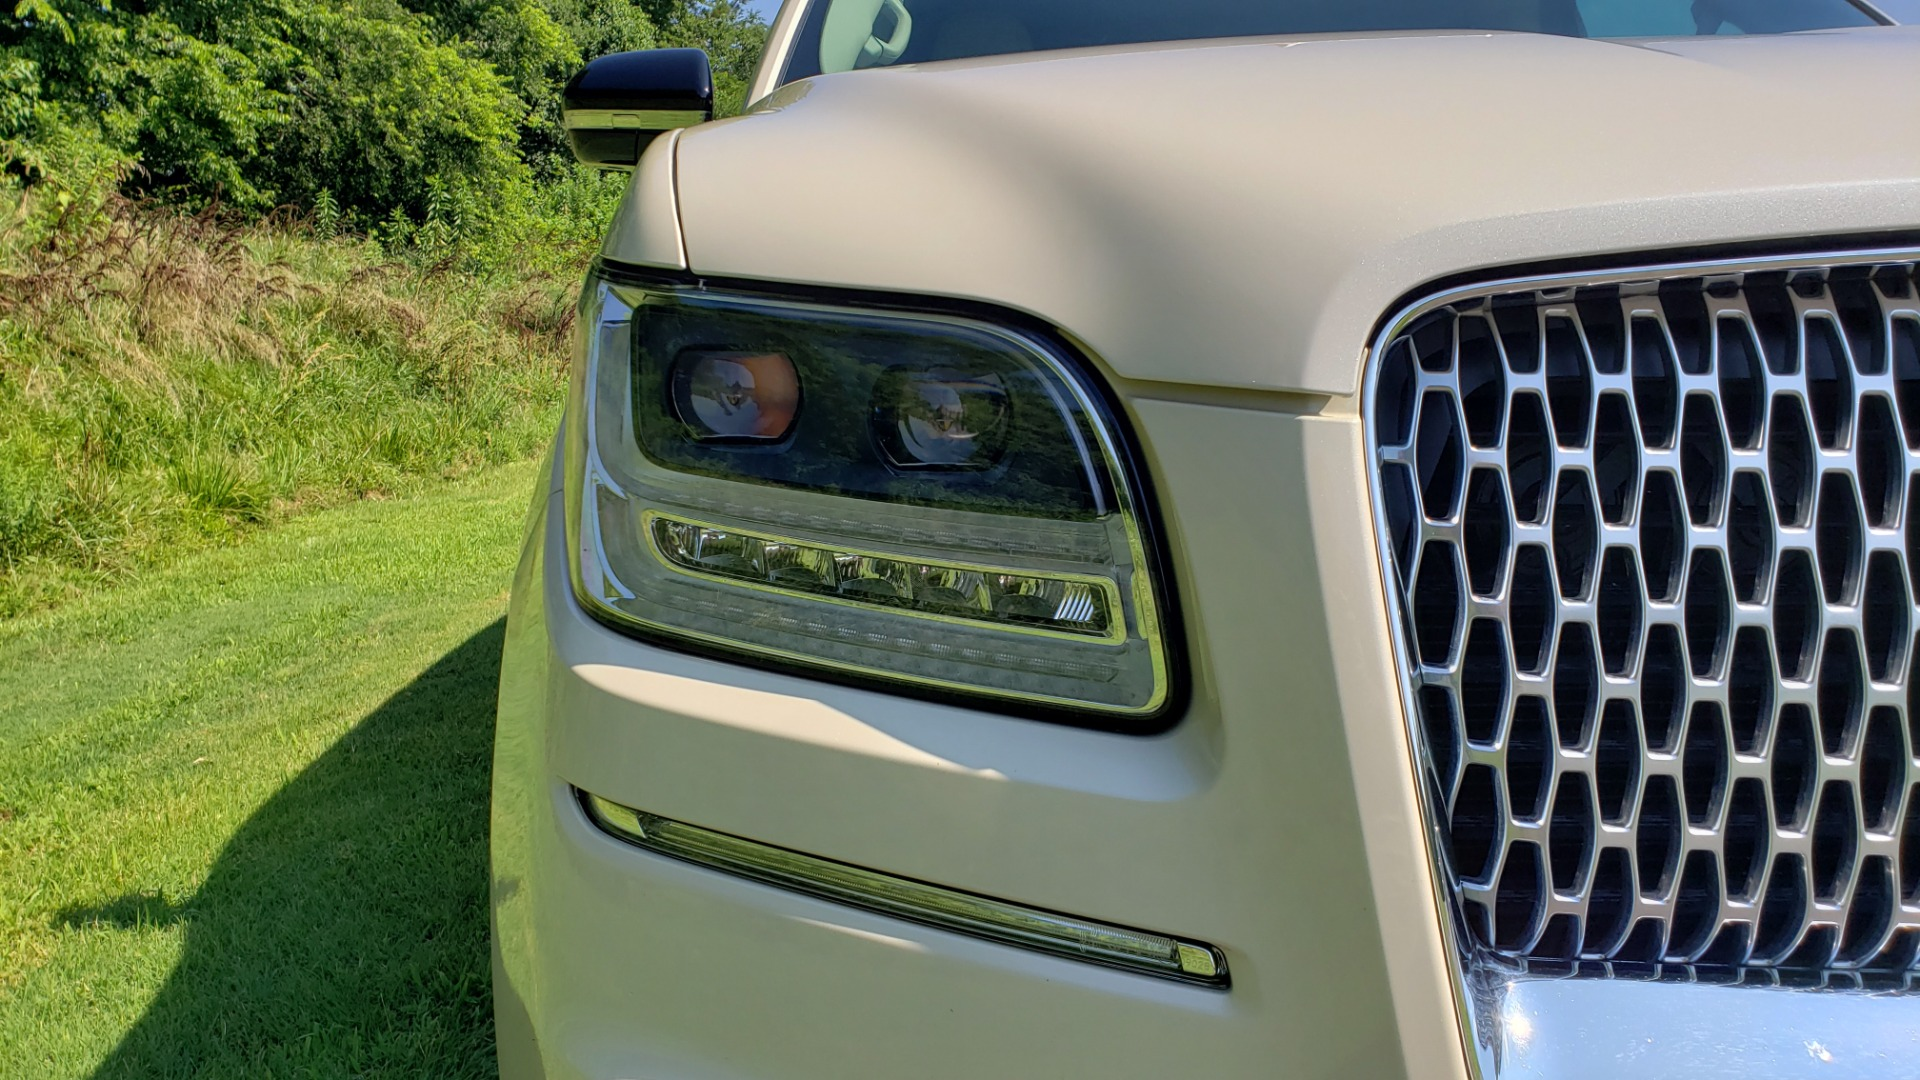 Used 2018 Lincoln NAVIGATOR PREMIERE 4X2 / TWIN-TURBO V6 / NAV / 3-ROW / REARVIEW for sale Sold at Formula Imports in Charlotte NC 28227 12